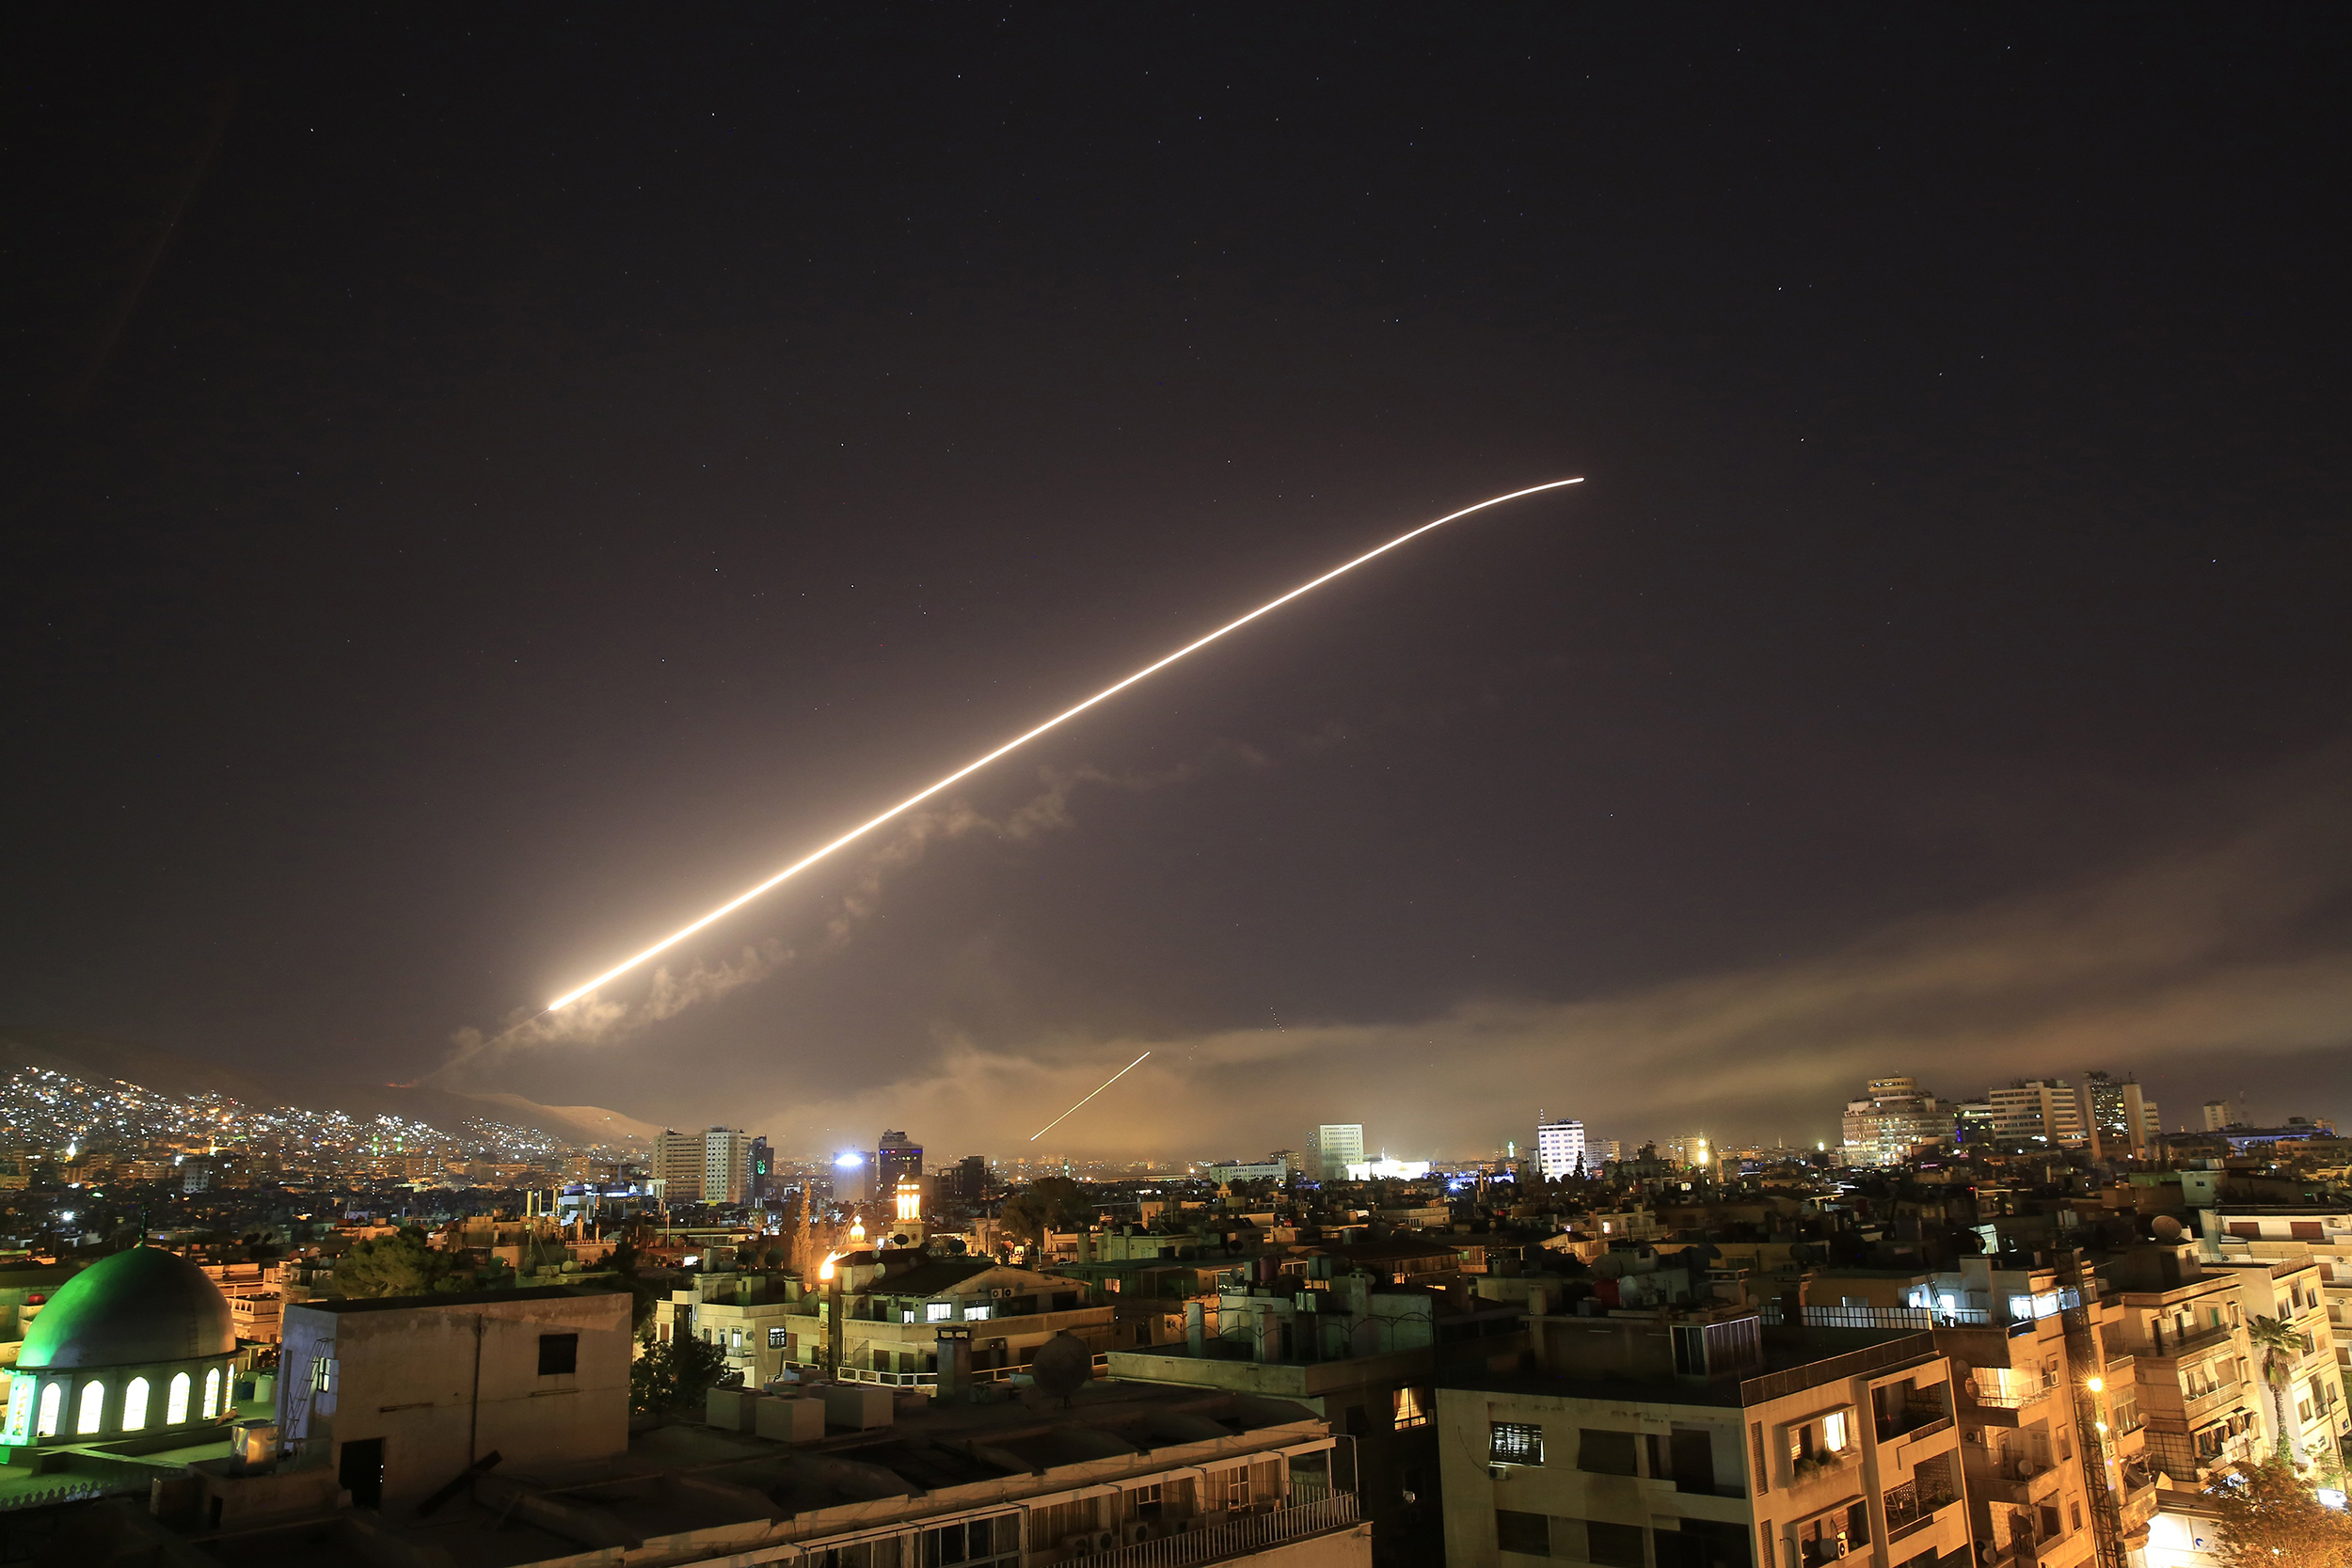 U.S., allies strike Syria in response to suspected chemical weapons attack